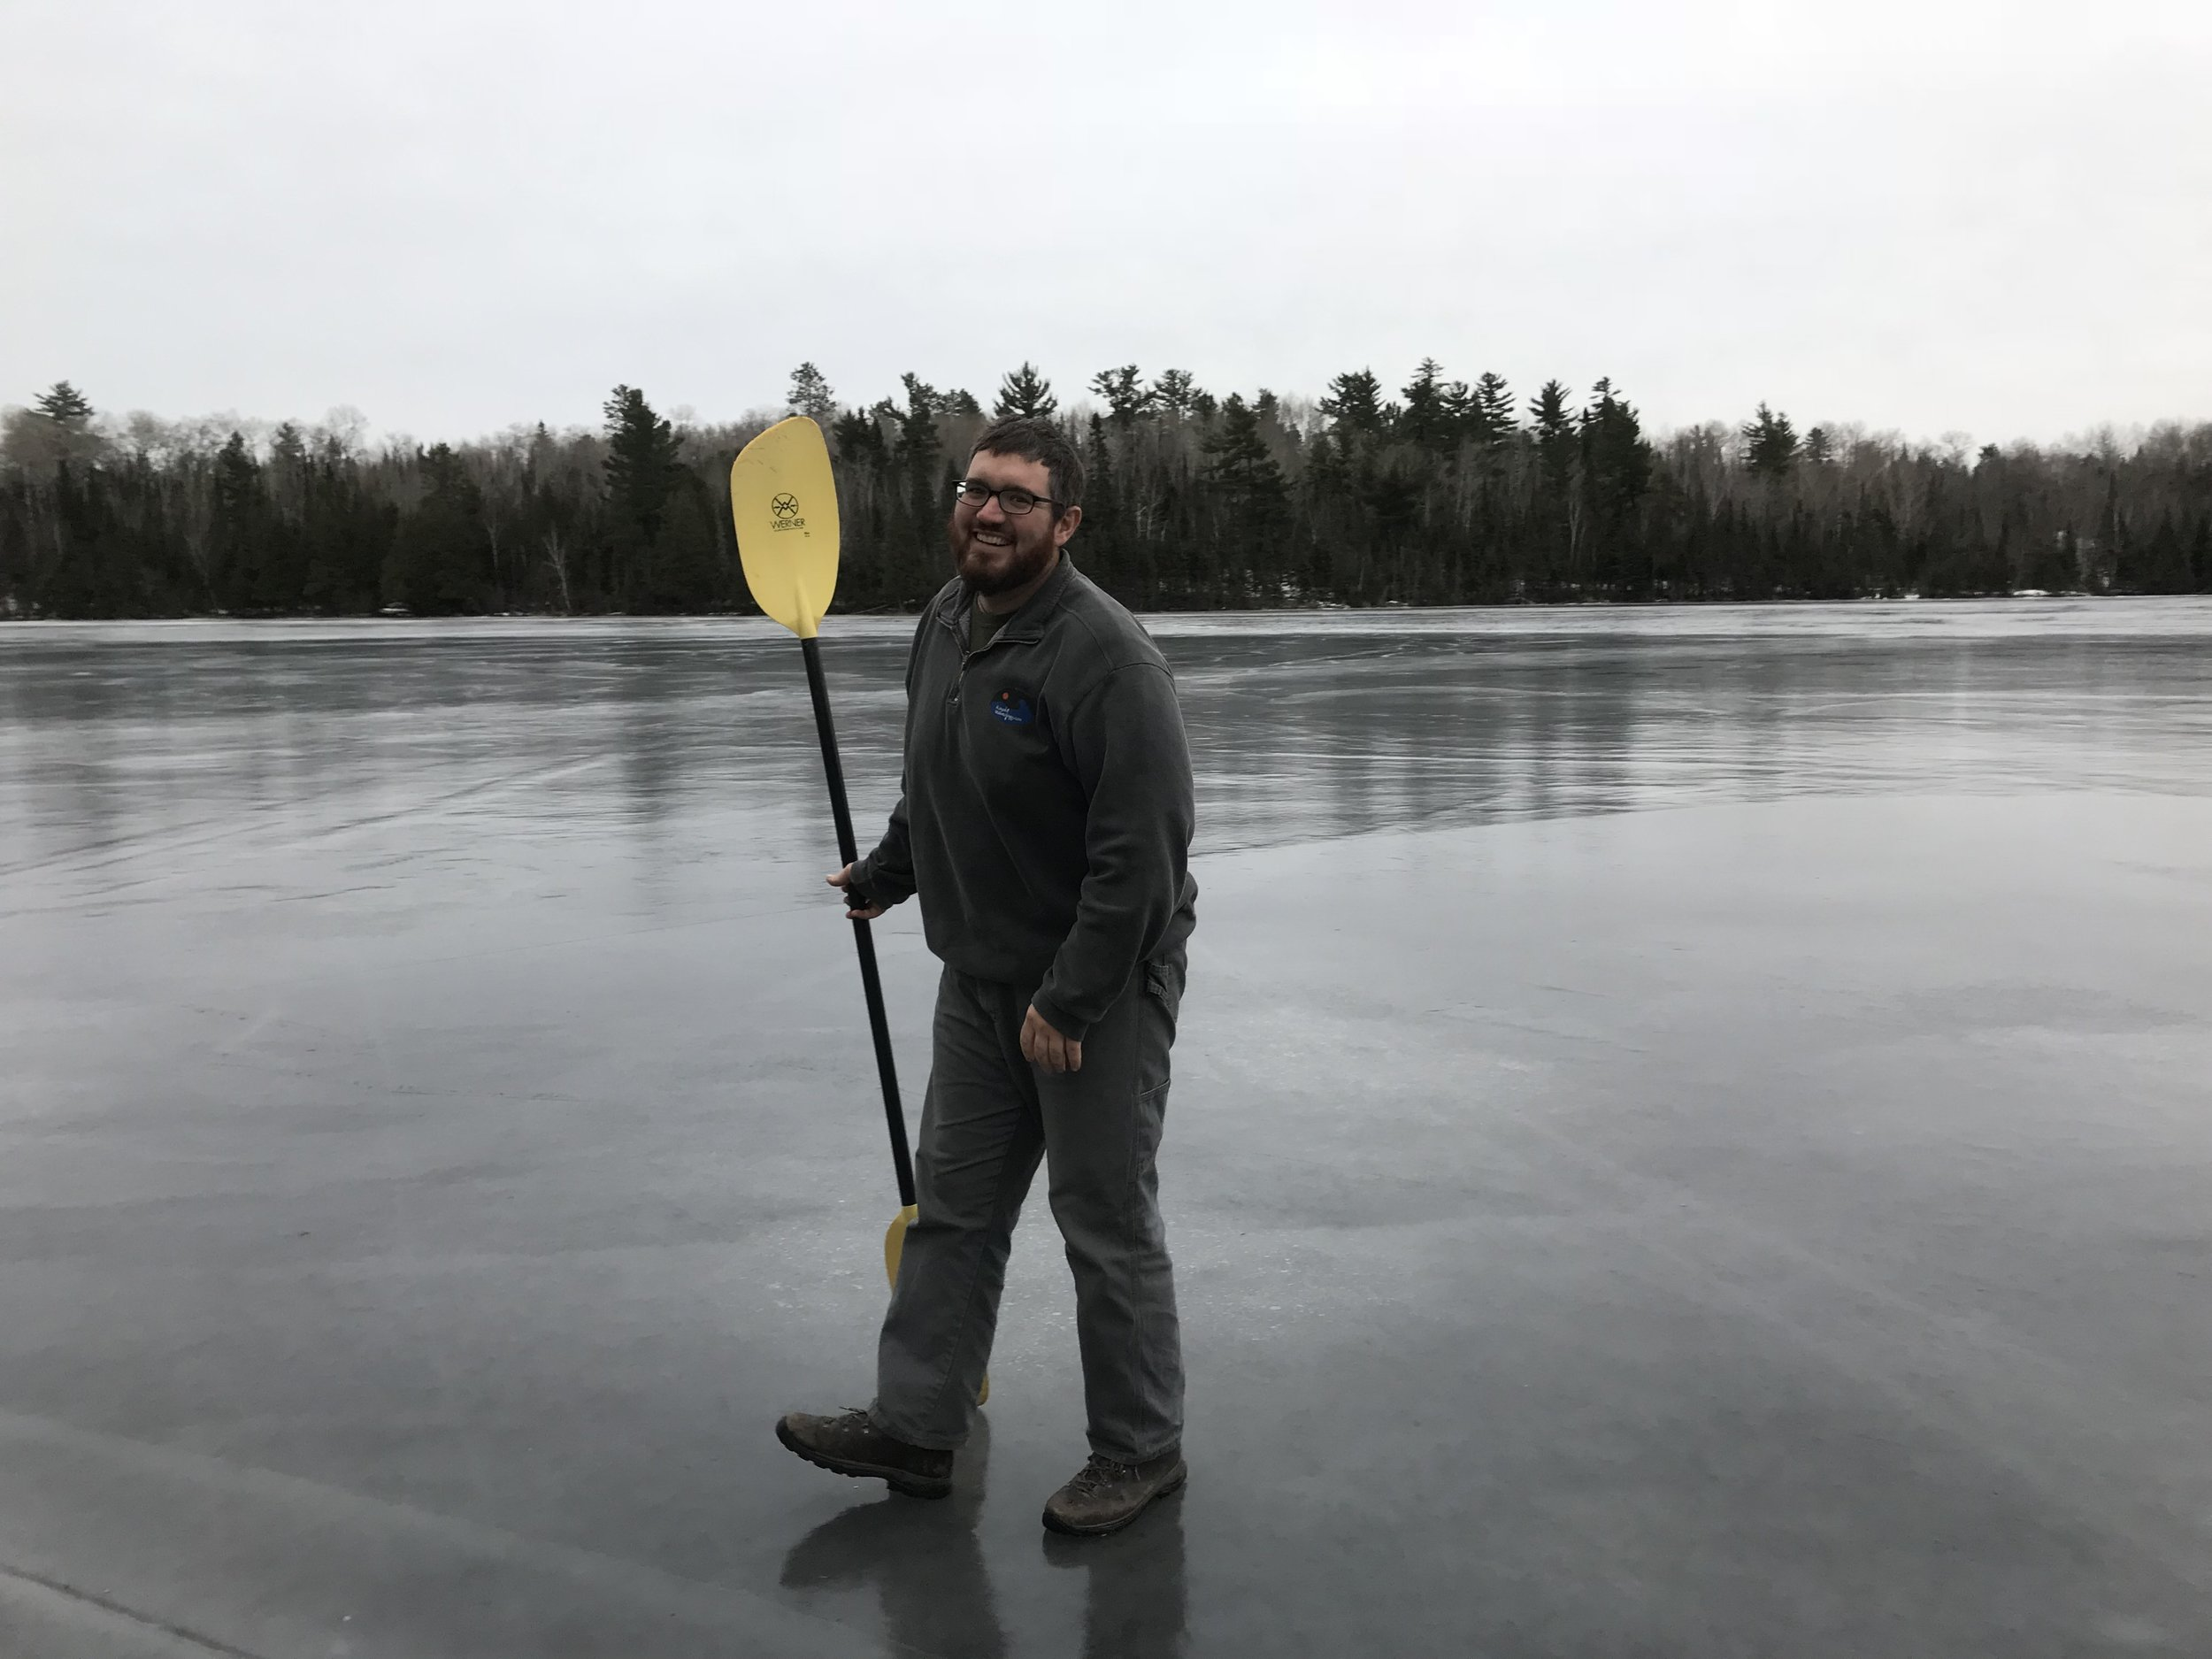 Already past paddling season in the Boundary Waters.